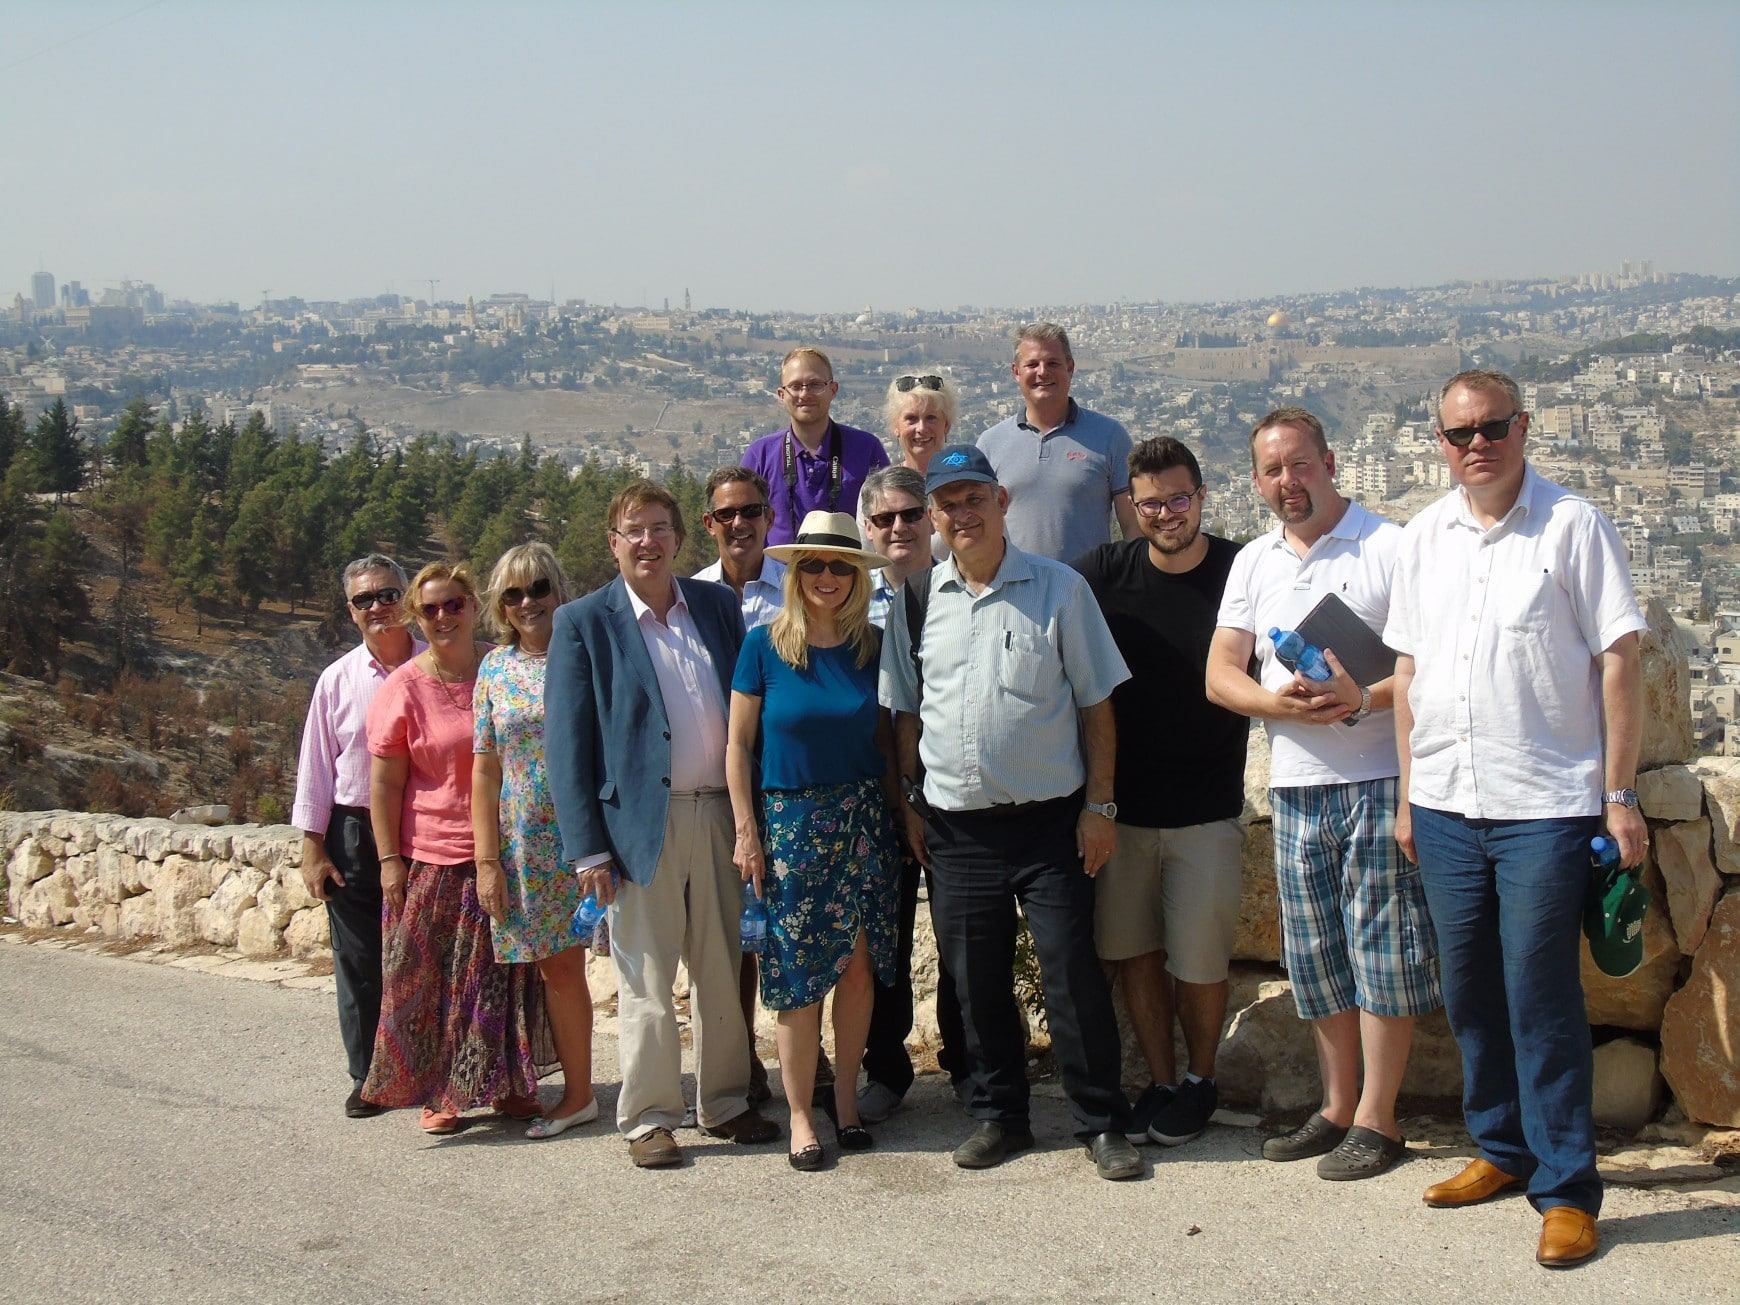 August 2016: CFI coordinates ninth delegation to Israel since 2015 General Election